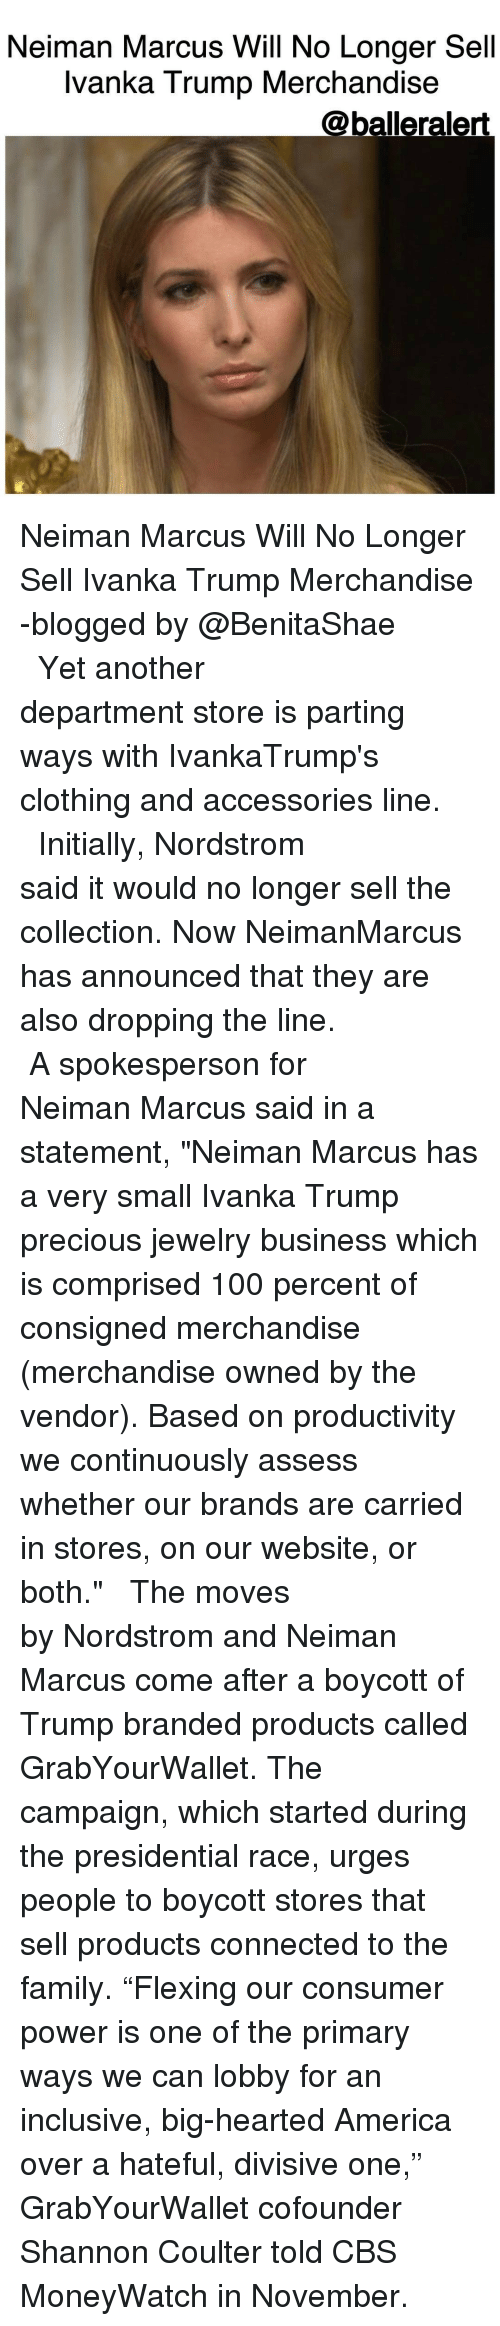 """Initialisms: Neiman Marcus Will No Longer Sell  Ivanka Trump Merchandise  @balleralert. Neiman Marcus Will No Longer Sell Ivanka Trump Merchandise -blogged by @BenitaShae ⠀⠀⠀⠀⠀⠀⠀⠀⠀ ⠀⠀⠀⠀⠀⠀⠀⠀⠀ Yet another department store is parting ways with IvankaTrump's clothing and accessories line. ⠀⠀⠀⠀⠀⠀⠀⠀⠀ ⠀⠀⠀⠀⠀⠀⠀⠀⠀ Initially, Nordstrom said it would no longer sell the collection. Now NeimanMarcus has announced that they are also dropping the line. ⠀⠀⠀⠀⠀⠀⠀⠀⠀ ⠀⠀⠀⠀⠀⠀⠀⠀⠀ A spokesperson for Neiman Marcus said in a statement, """"Neiman Marcus has a very small Ivanka Trump precious jewelry business which is comprised 100 percent of consigned merchandise (merchandise owned by the vendor). Based on productivity we continuously assess whether our brands are carried in stores, on our website, or both."""" ⠀⠀⠀⠀⠀⠀⠀⠀⠀ ⠀⠀⠀⠀⠀⠀⠀⠀⠀ The moves by Nordstrom and Neiman Marcus come after a boycott of Trump branded products called GrabYourWallet. The campaign, which started during the presidential race, urges people to boycott stores that sell products connected to the family. """"Flexing our consumer power is one of the primary ways we can lobby for an inclusive, big-hearted America over a hateful, divisive one,"""" GrabYourWallet cofounder Shannon Coulter told CBS MoneyWatch in November."""